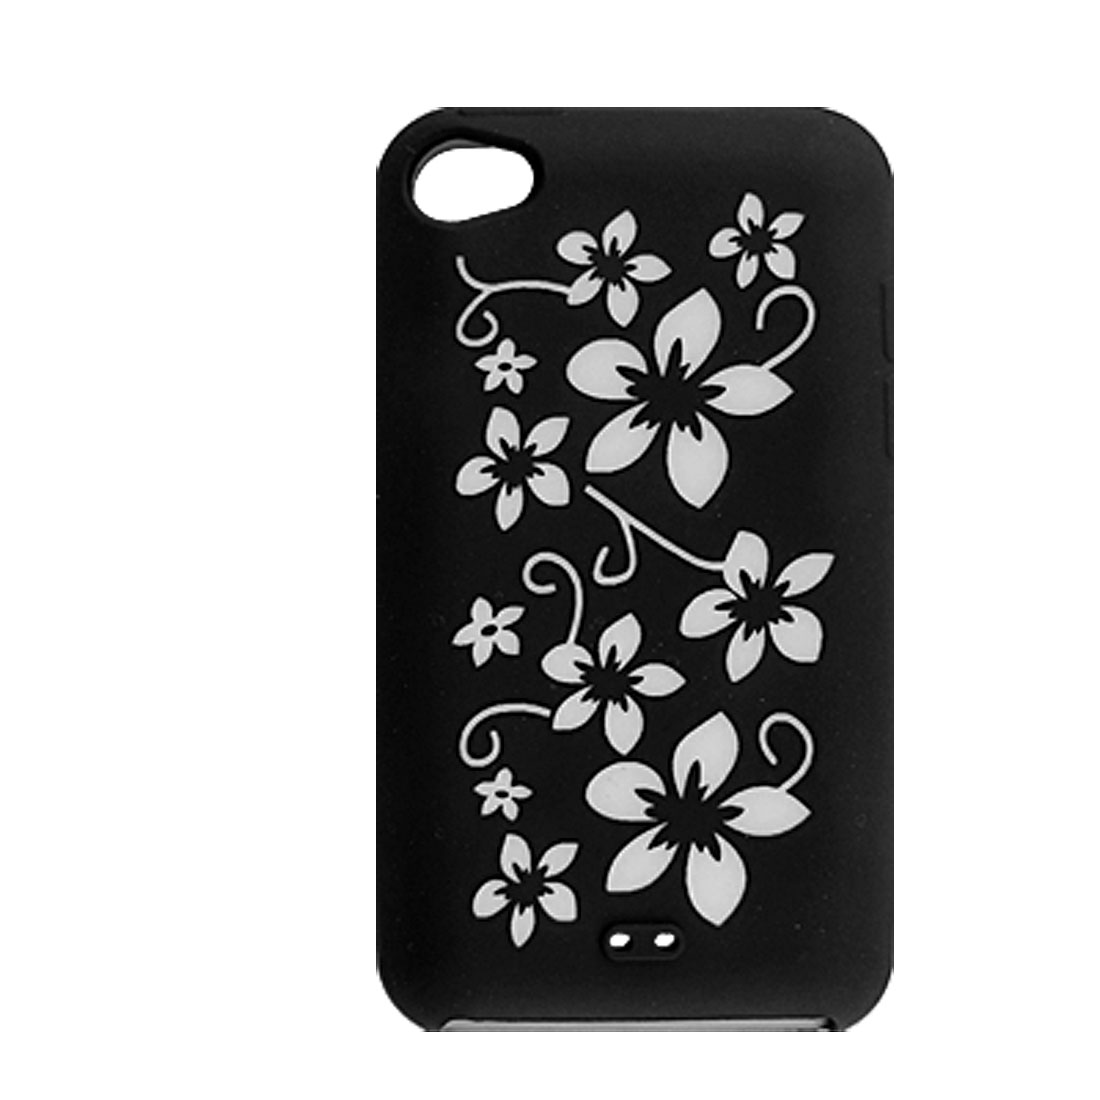 Floral Silicone Skin Protector Cover for iPod Touch 4G Black